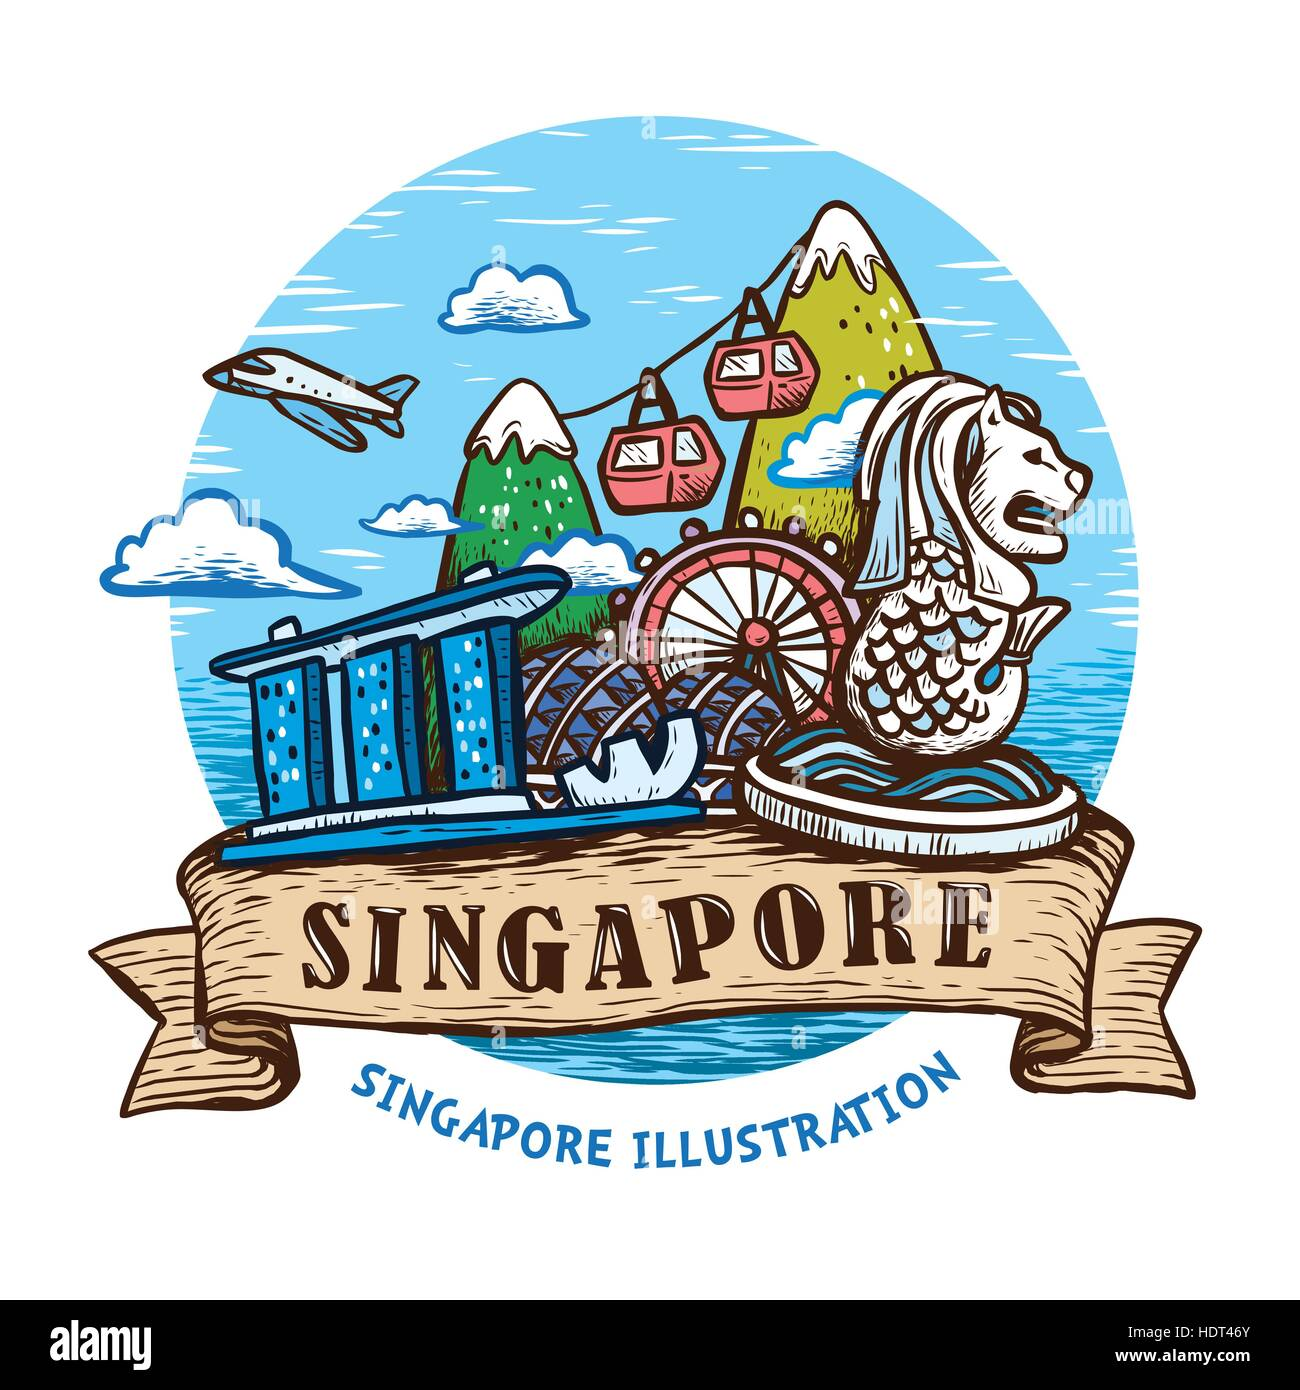 lovely Singapore scenery poster design in hand drawn style - Stock Image